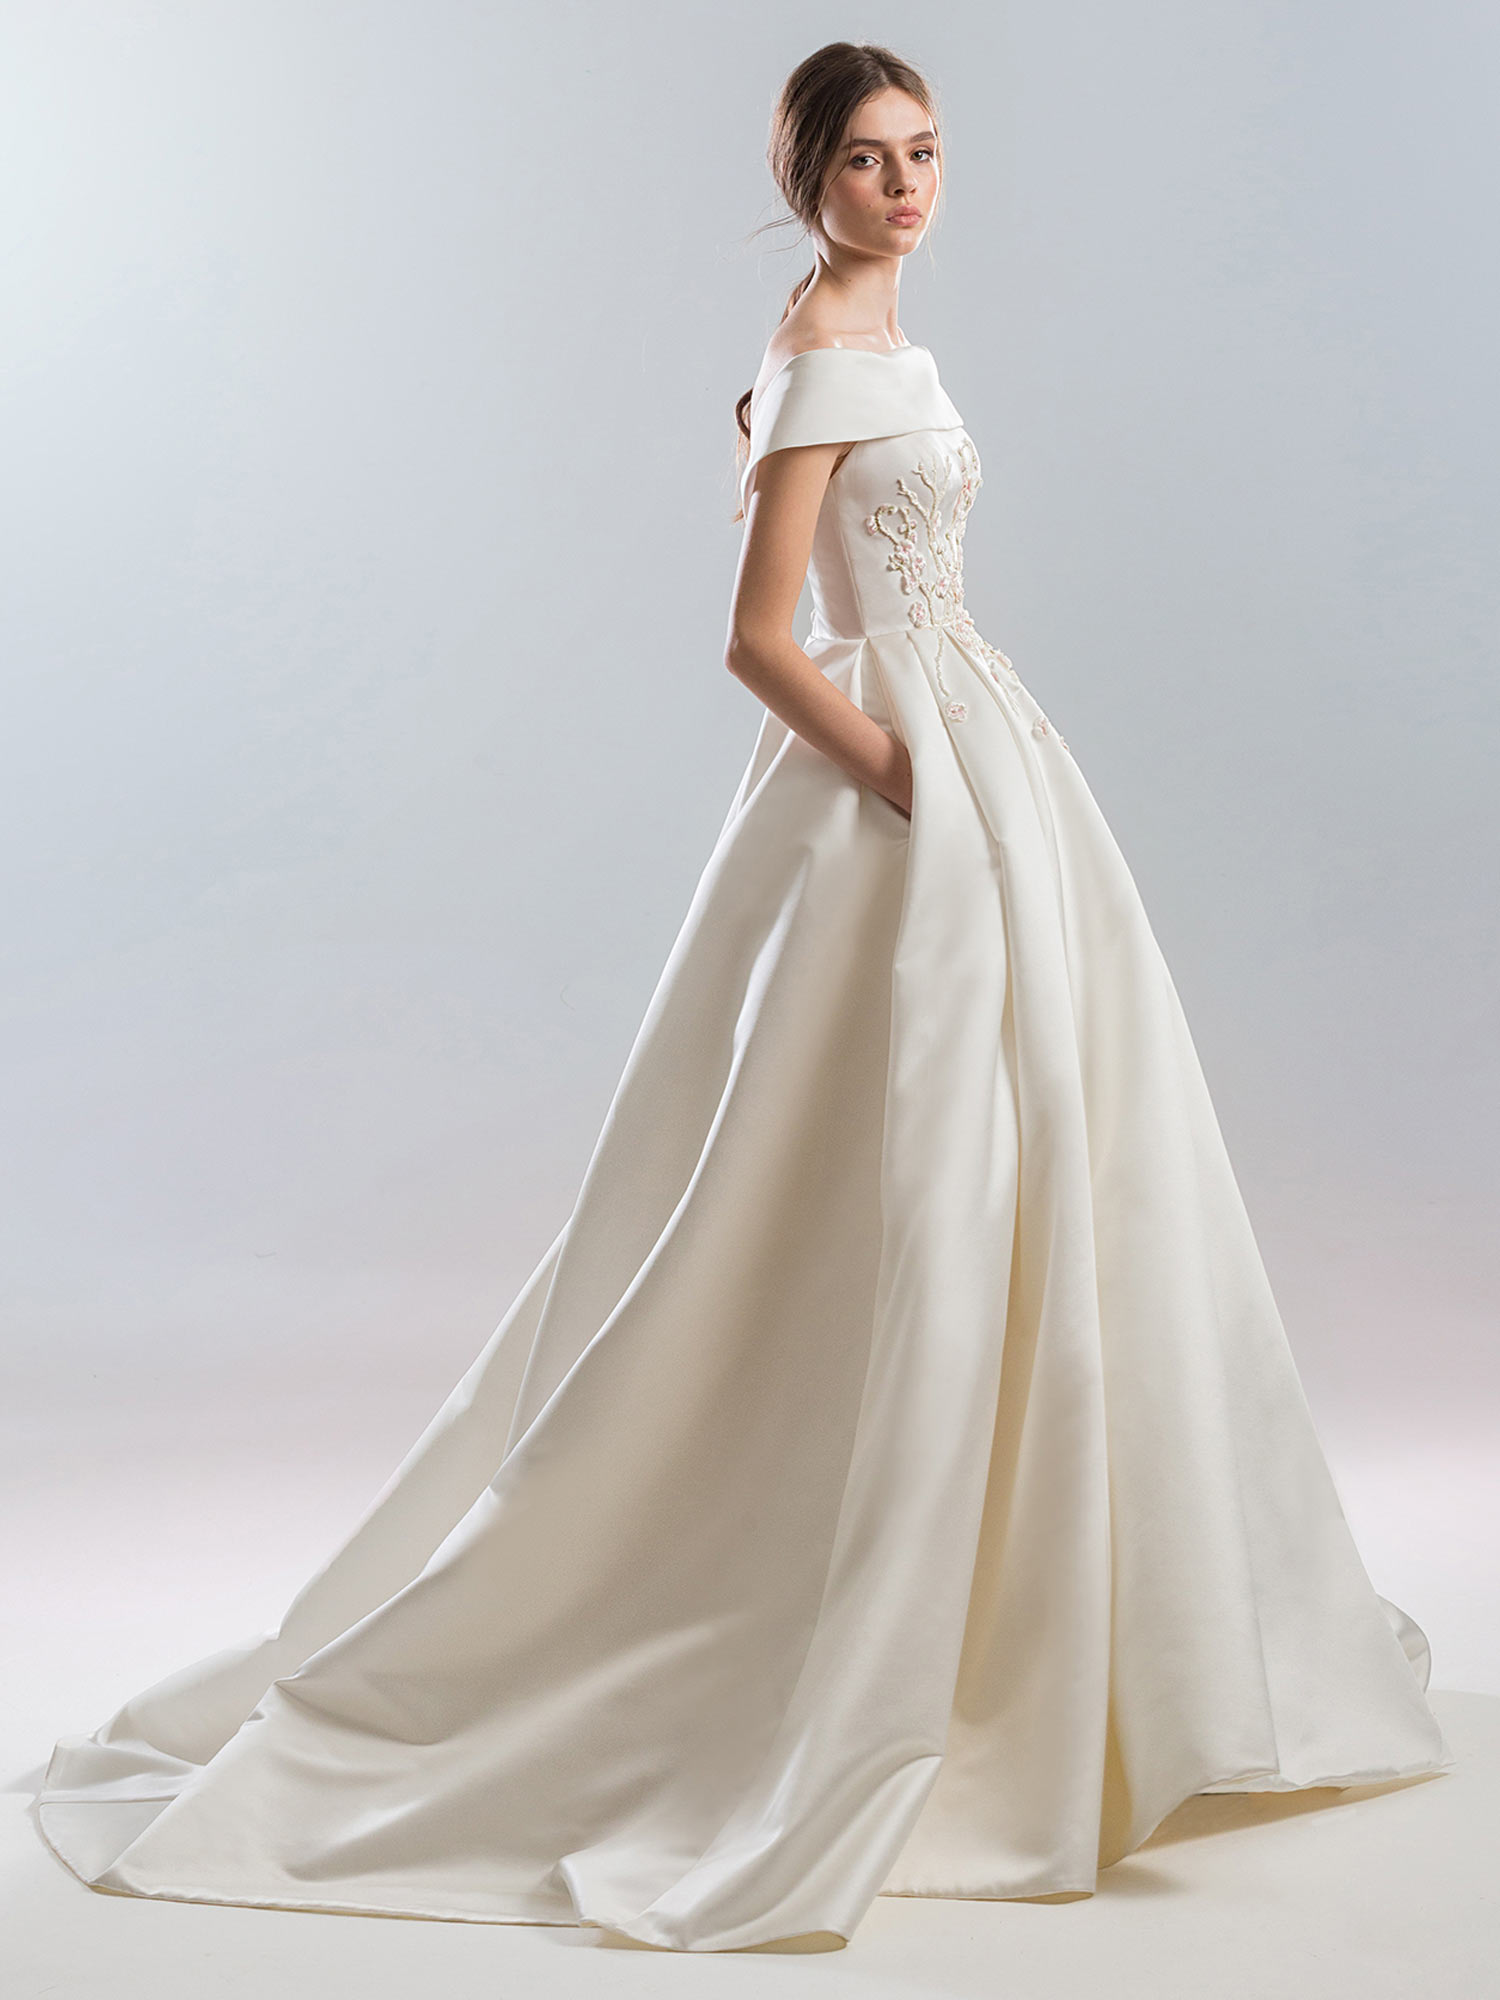 Style #1903L, available in ivory (photo), white